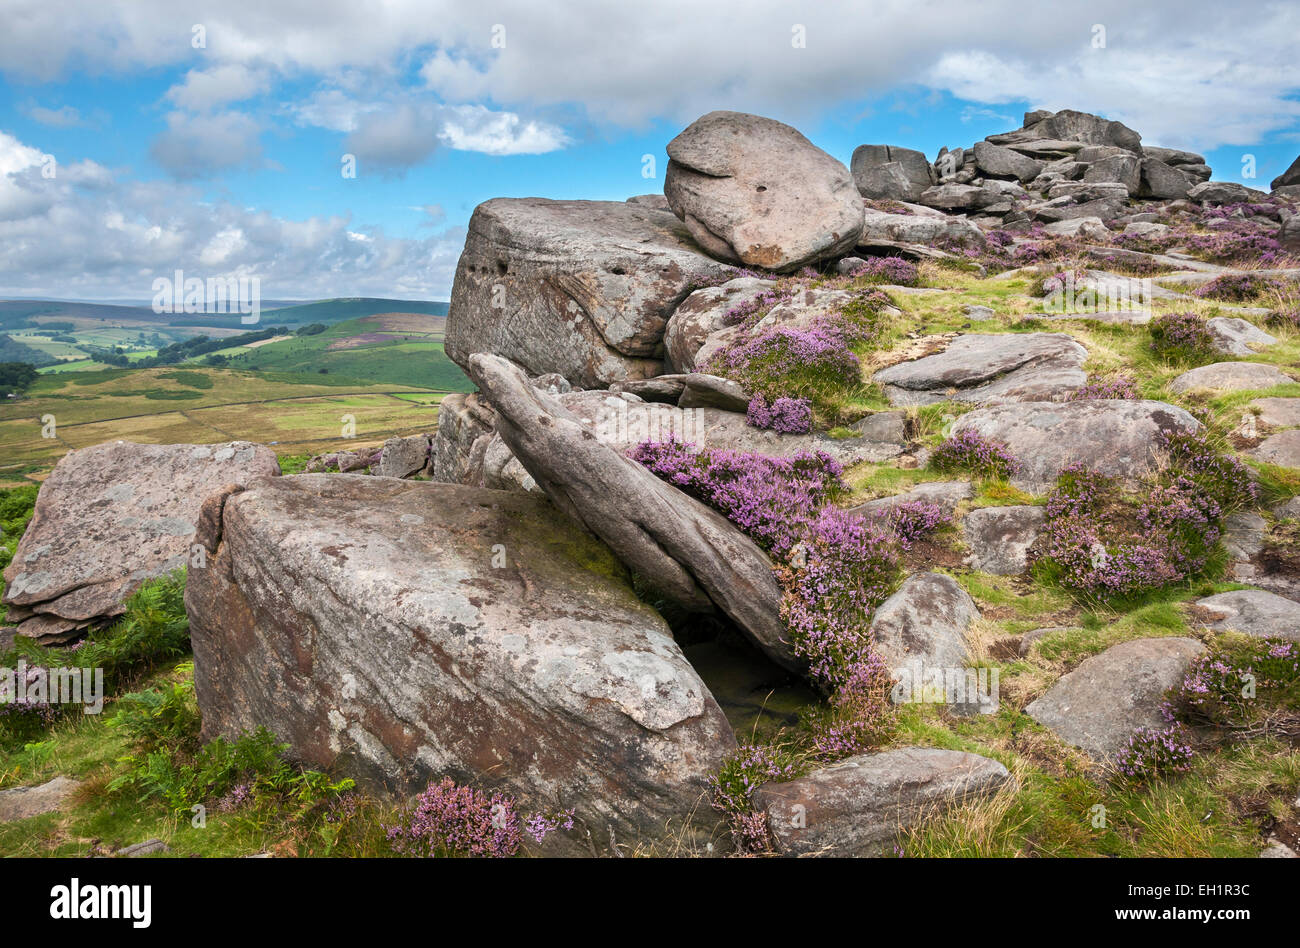 Over Owler Tor in the Peak District on a summers day. Heather blooming around the gritstone rocks. - Stock Image